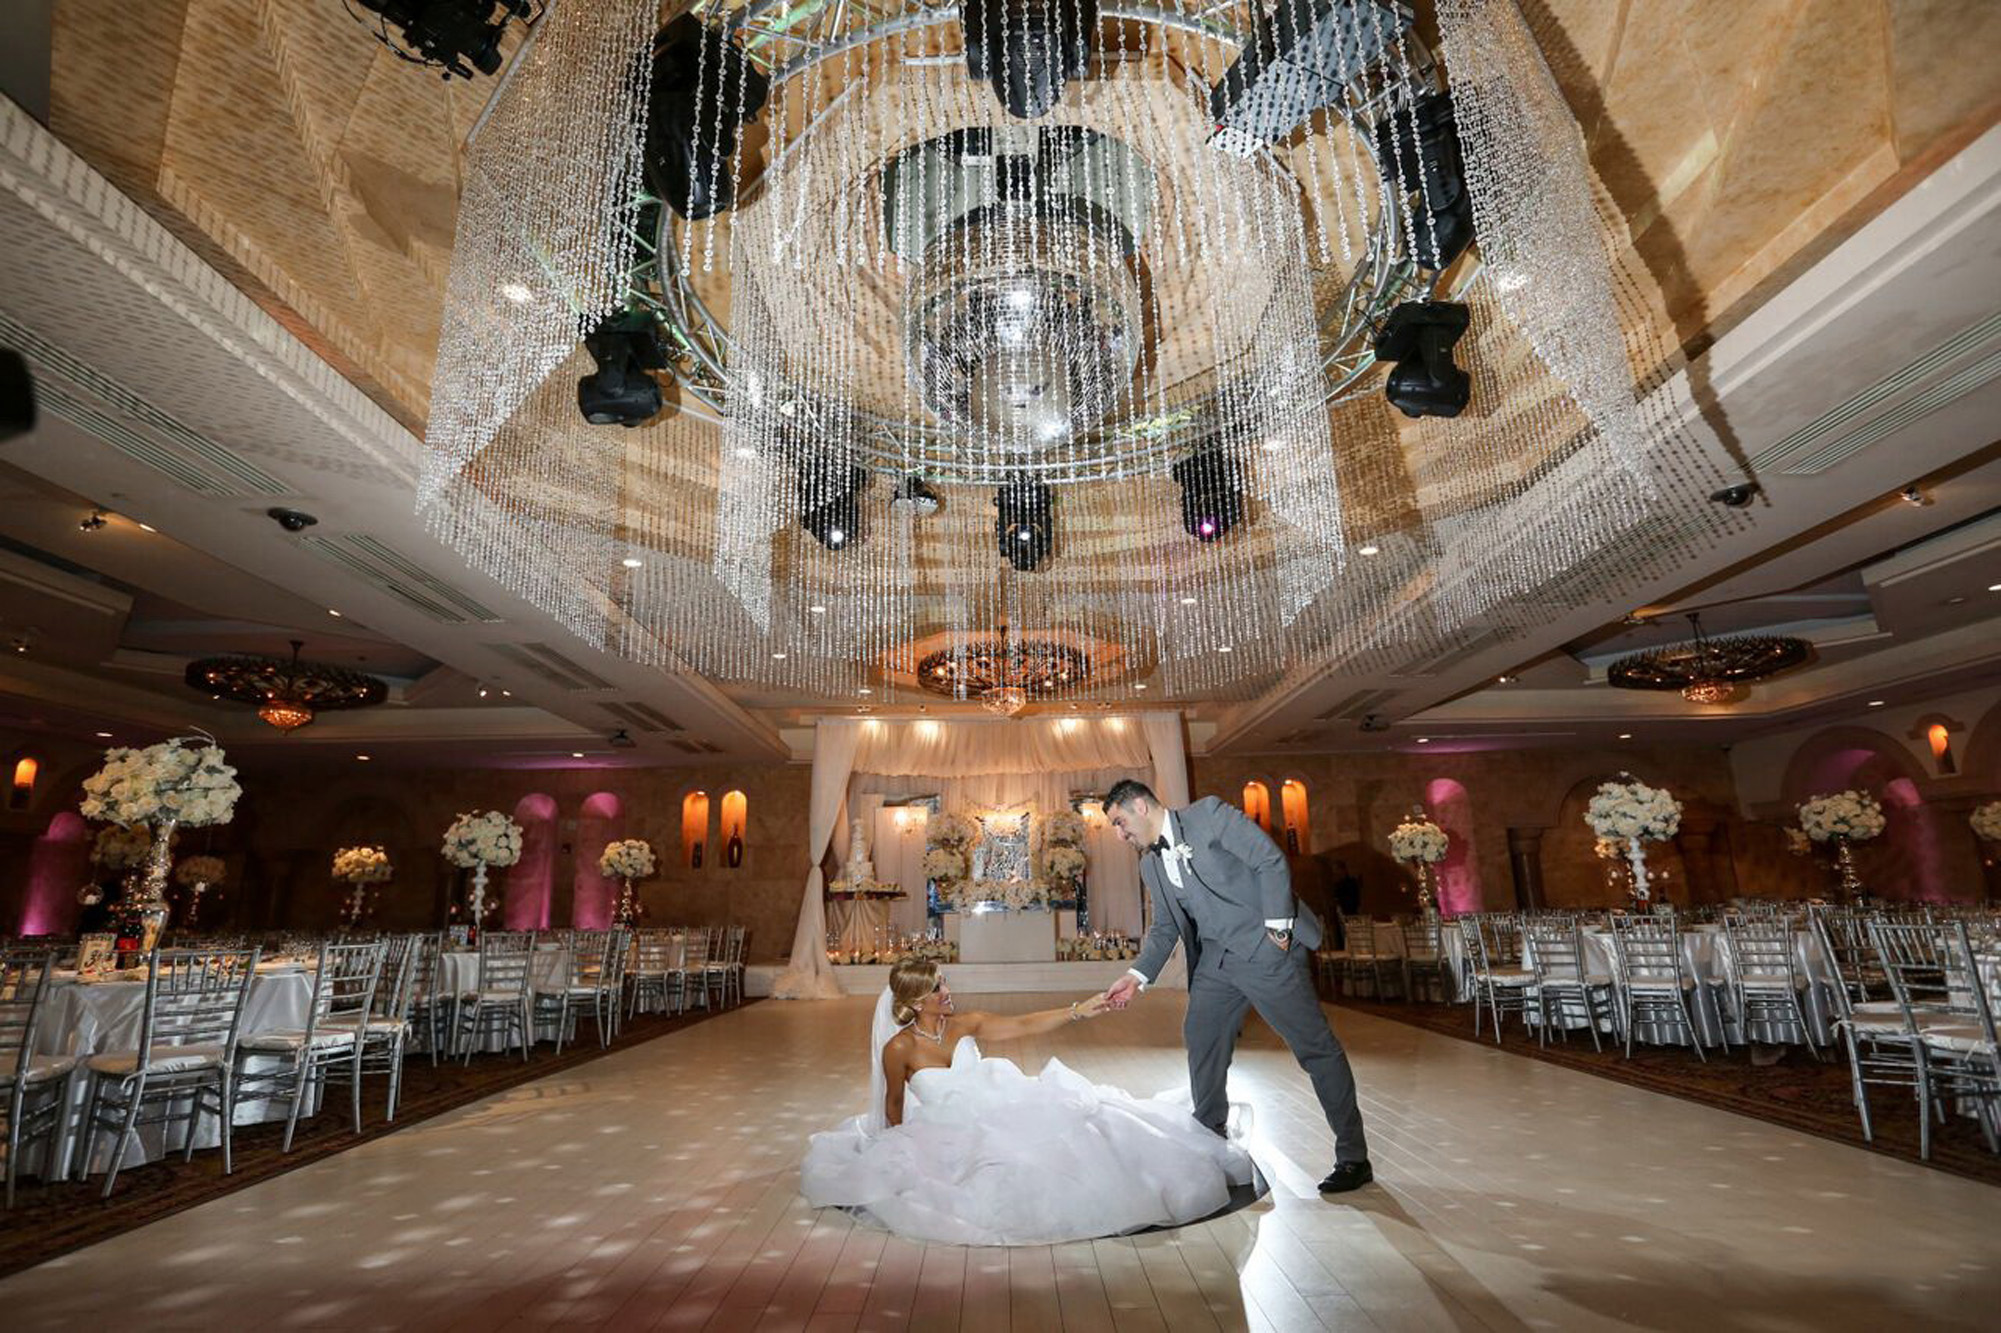 st Event & Wedding Venue in N Hollywood CA Le Foyer Ballroom